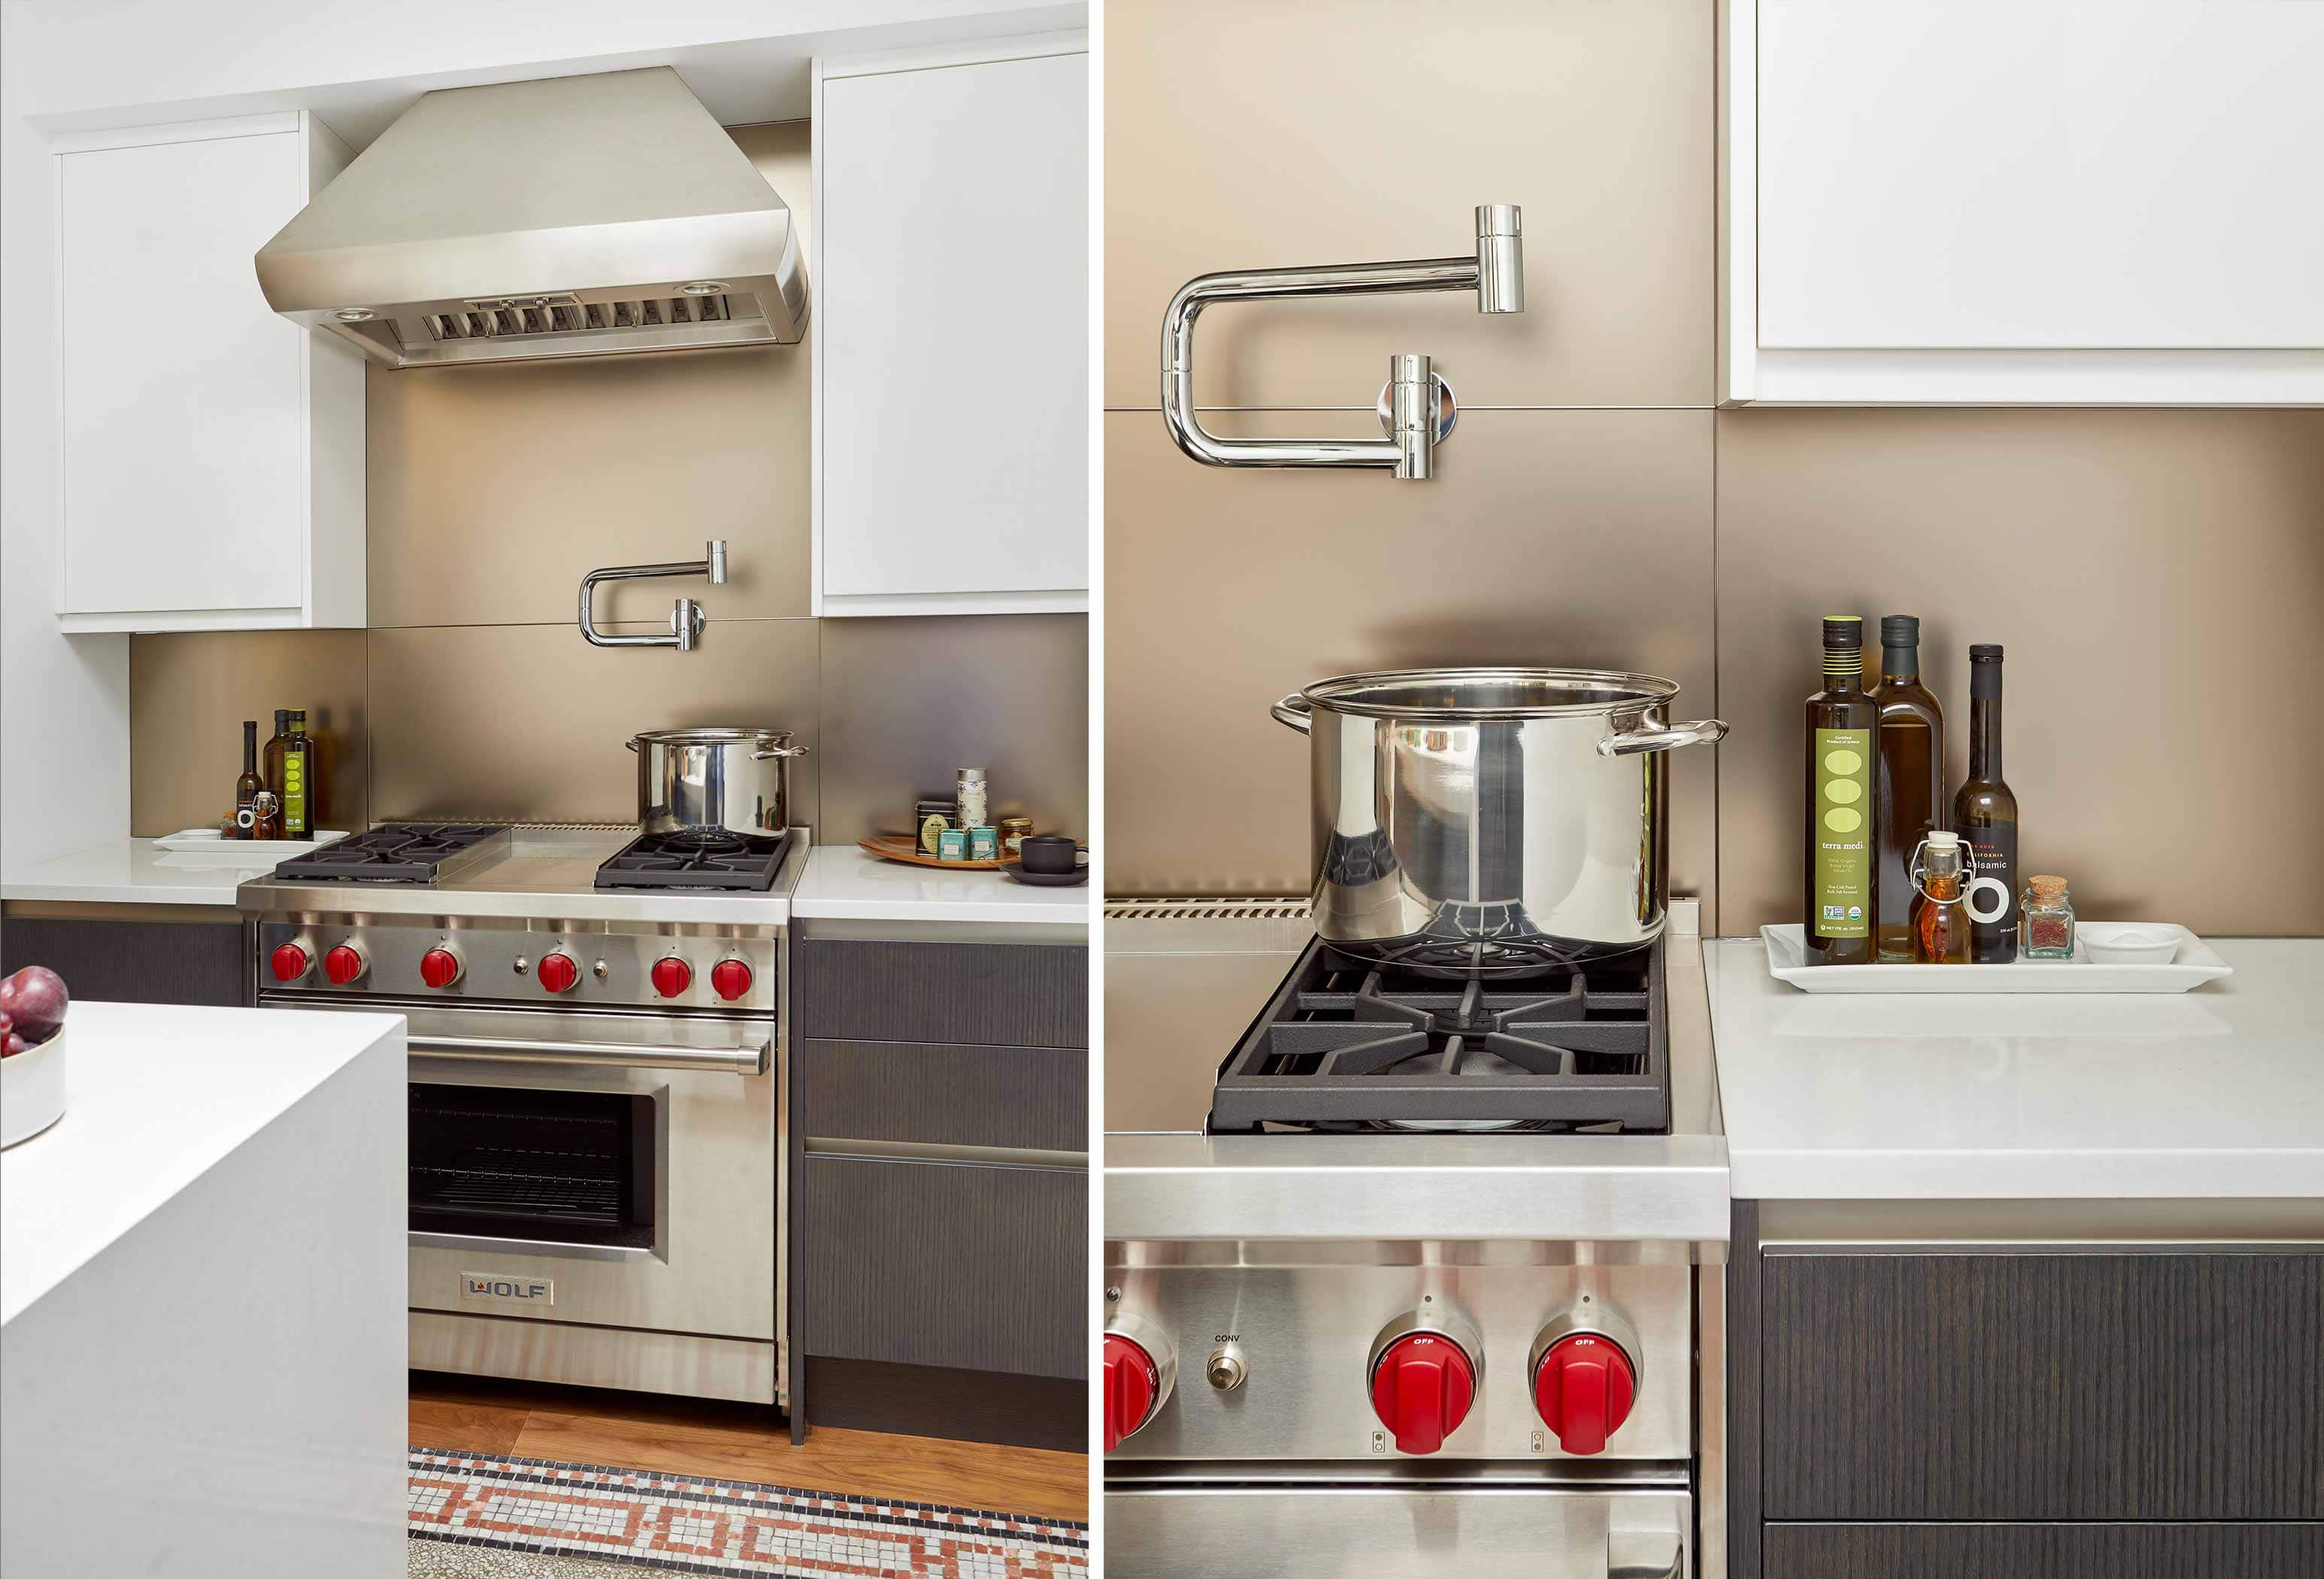 tribeca kitchen with pot filler, wolf oven, metallic backsplash, and mixed metal finishes - darci hether new york